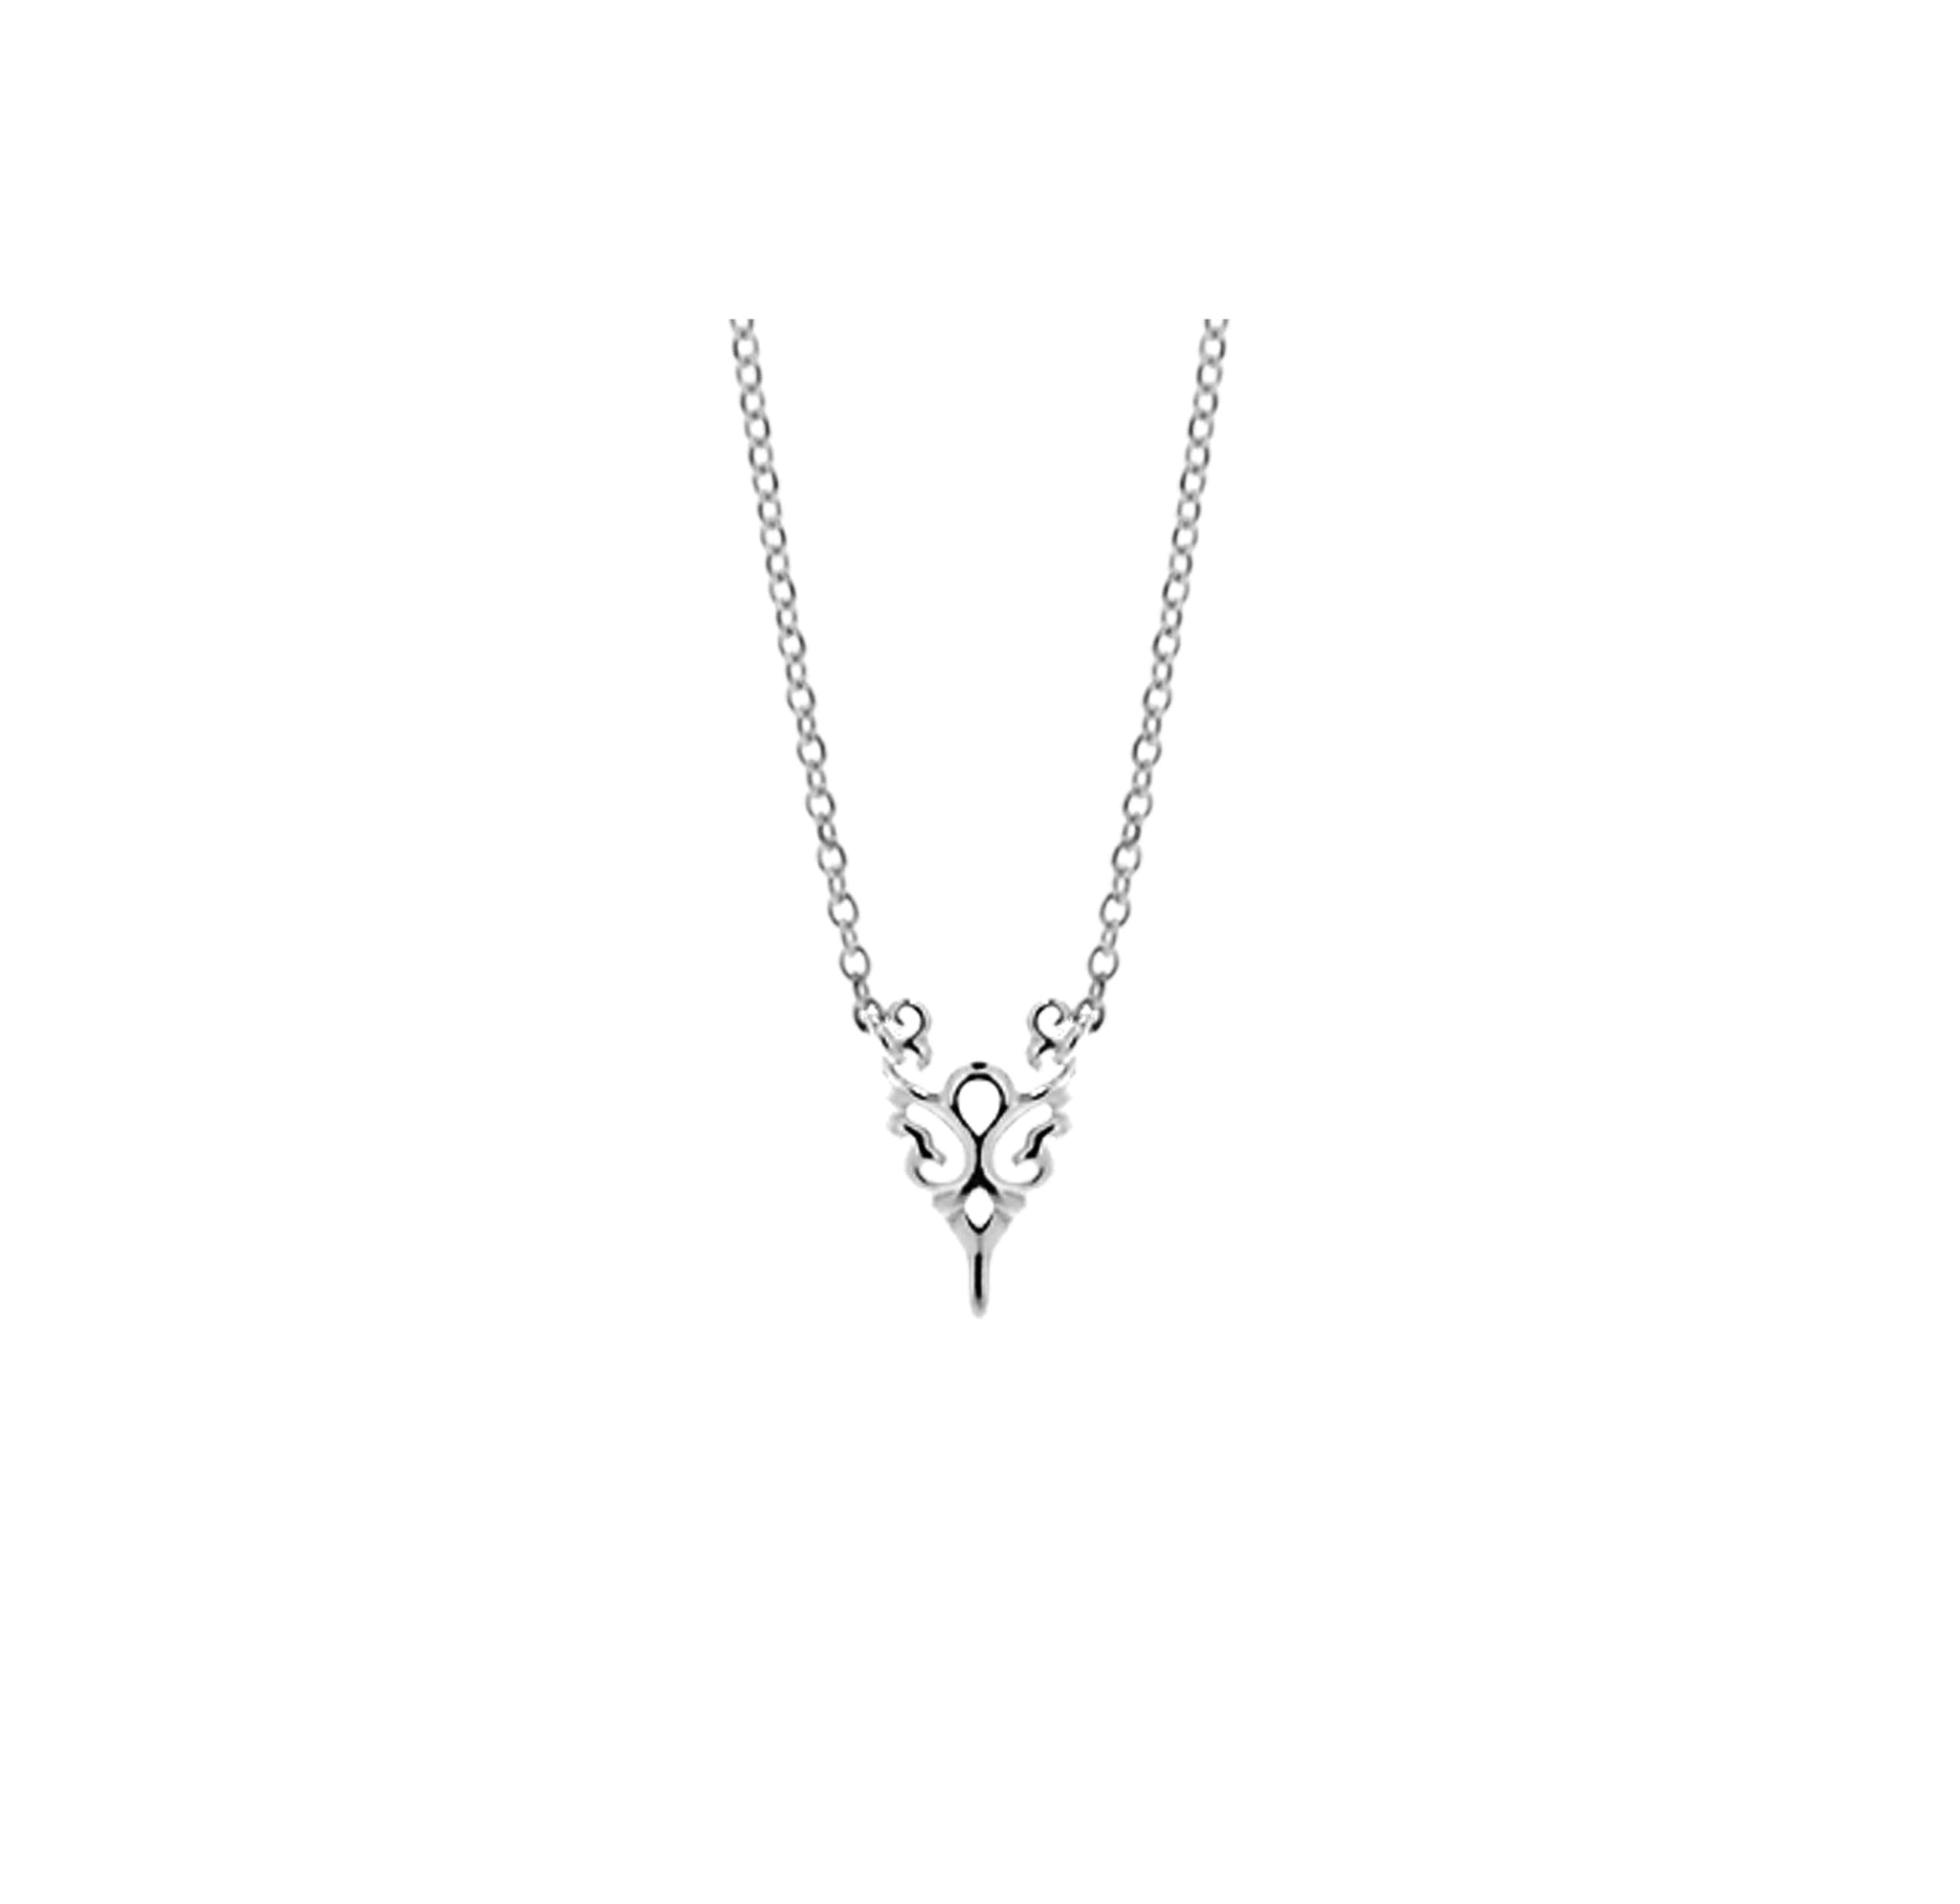 Arbo Motif Necklace (Includes Options) - Ravior Jewels